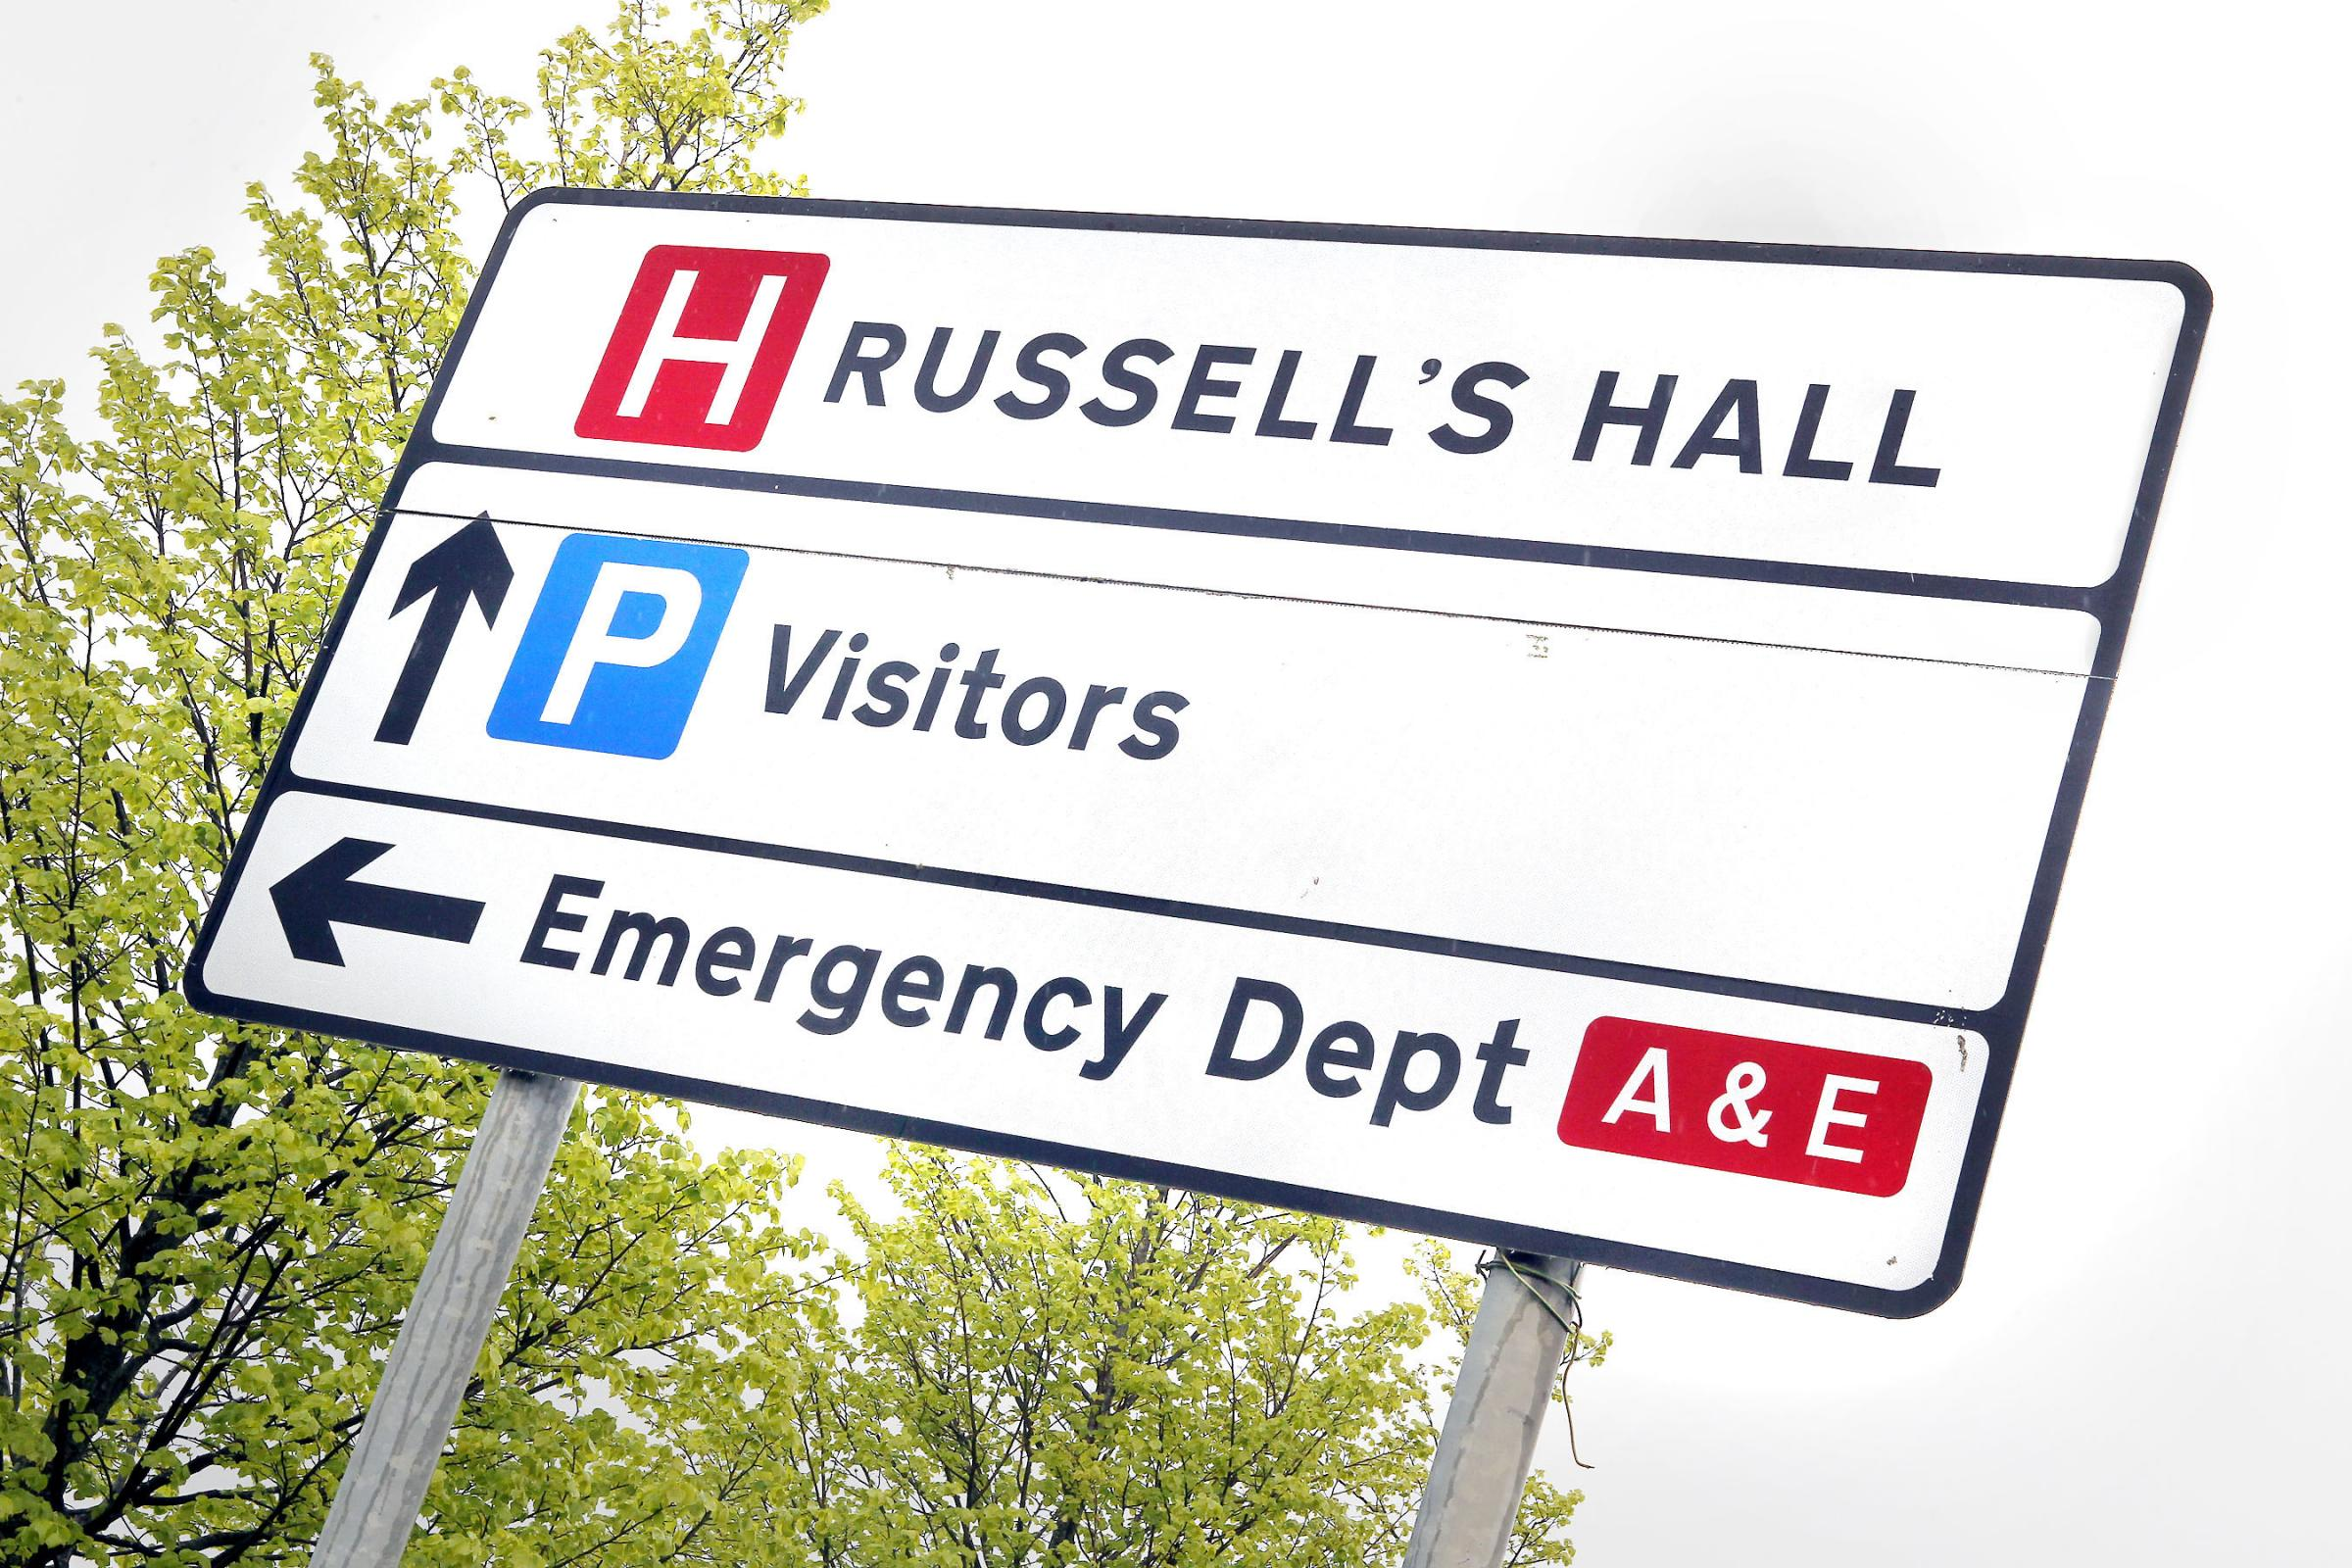 Major incident plans in place as Dudley A&E unit battles biggest admissions crisis in four years